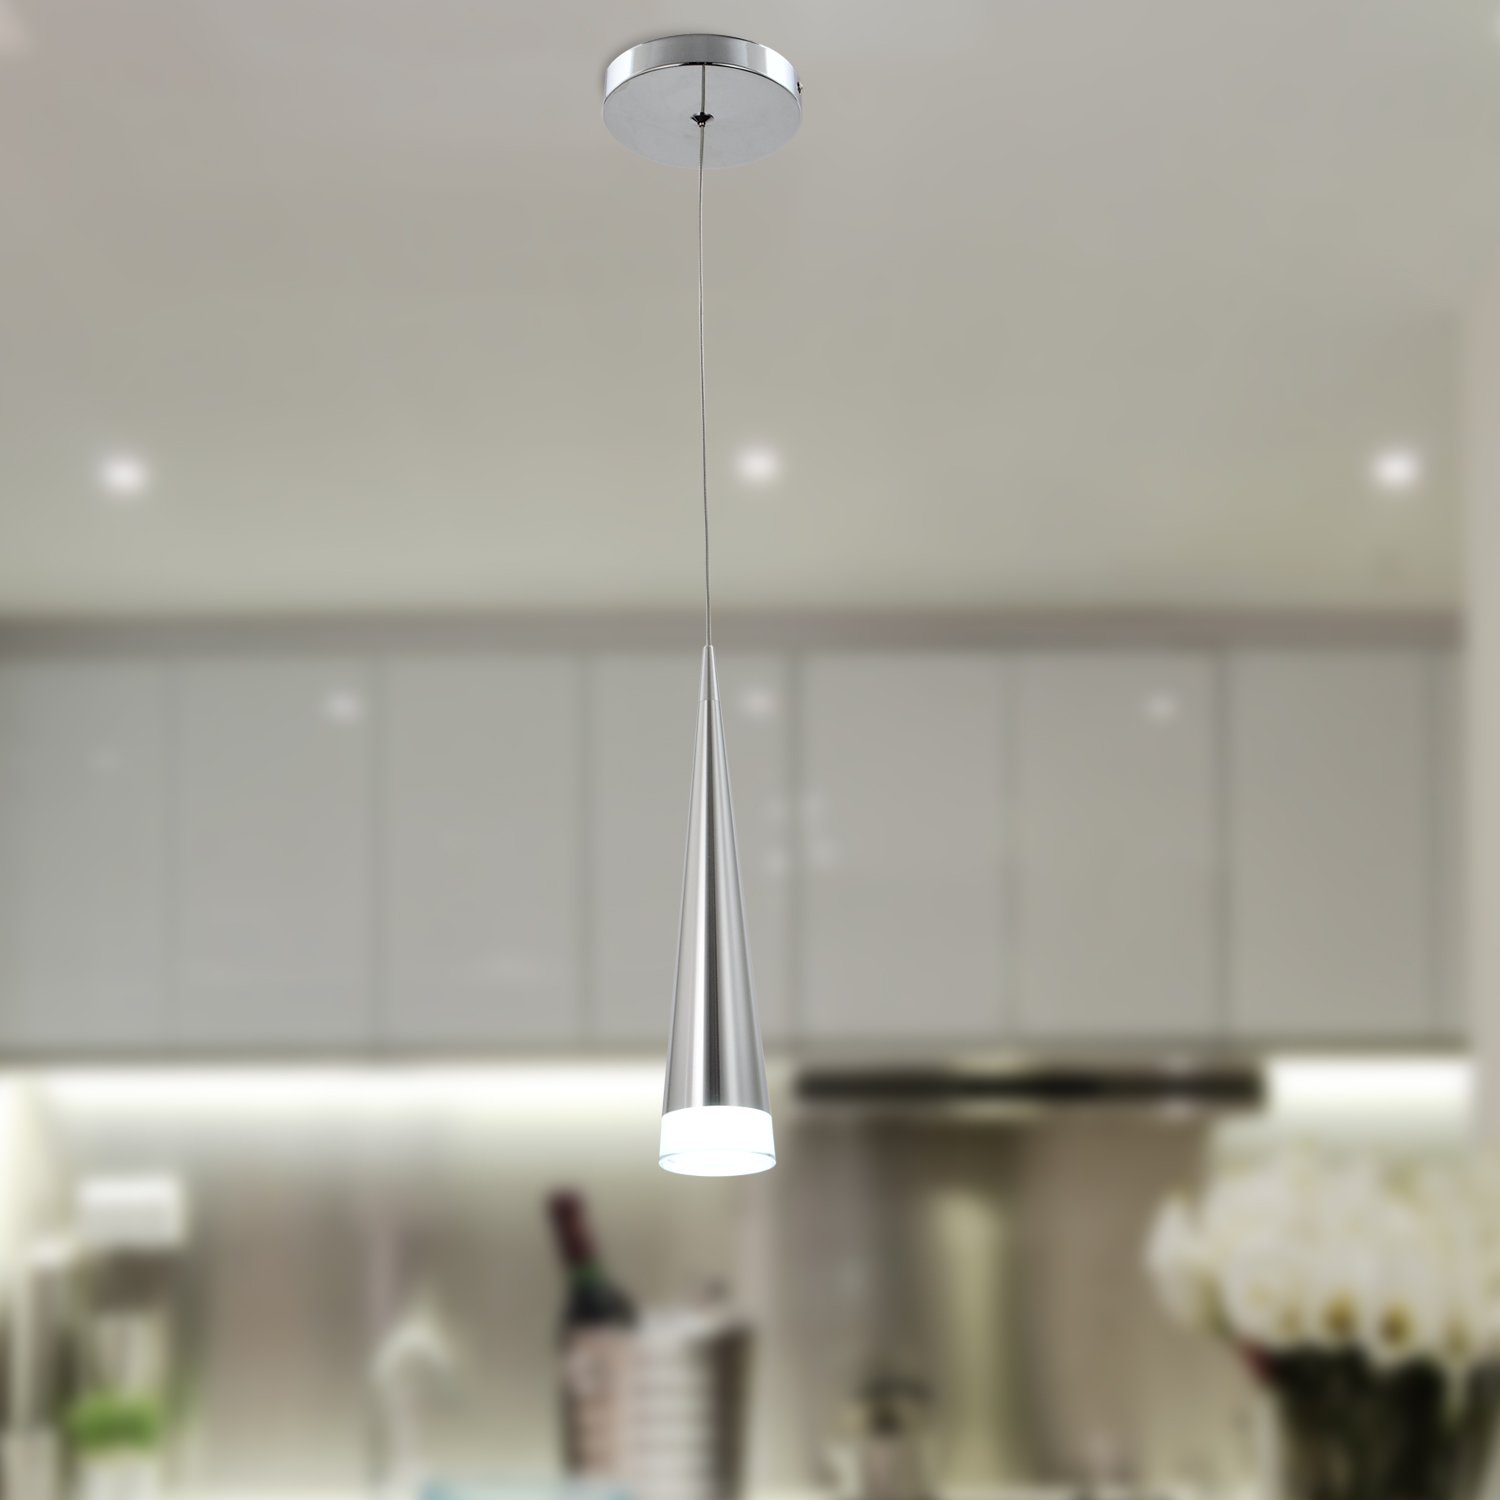 Unitary Brand Modern Nature White LED Acrylic Pendant Light Max 5w Plating Finish by Unitary (Image #3)